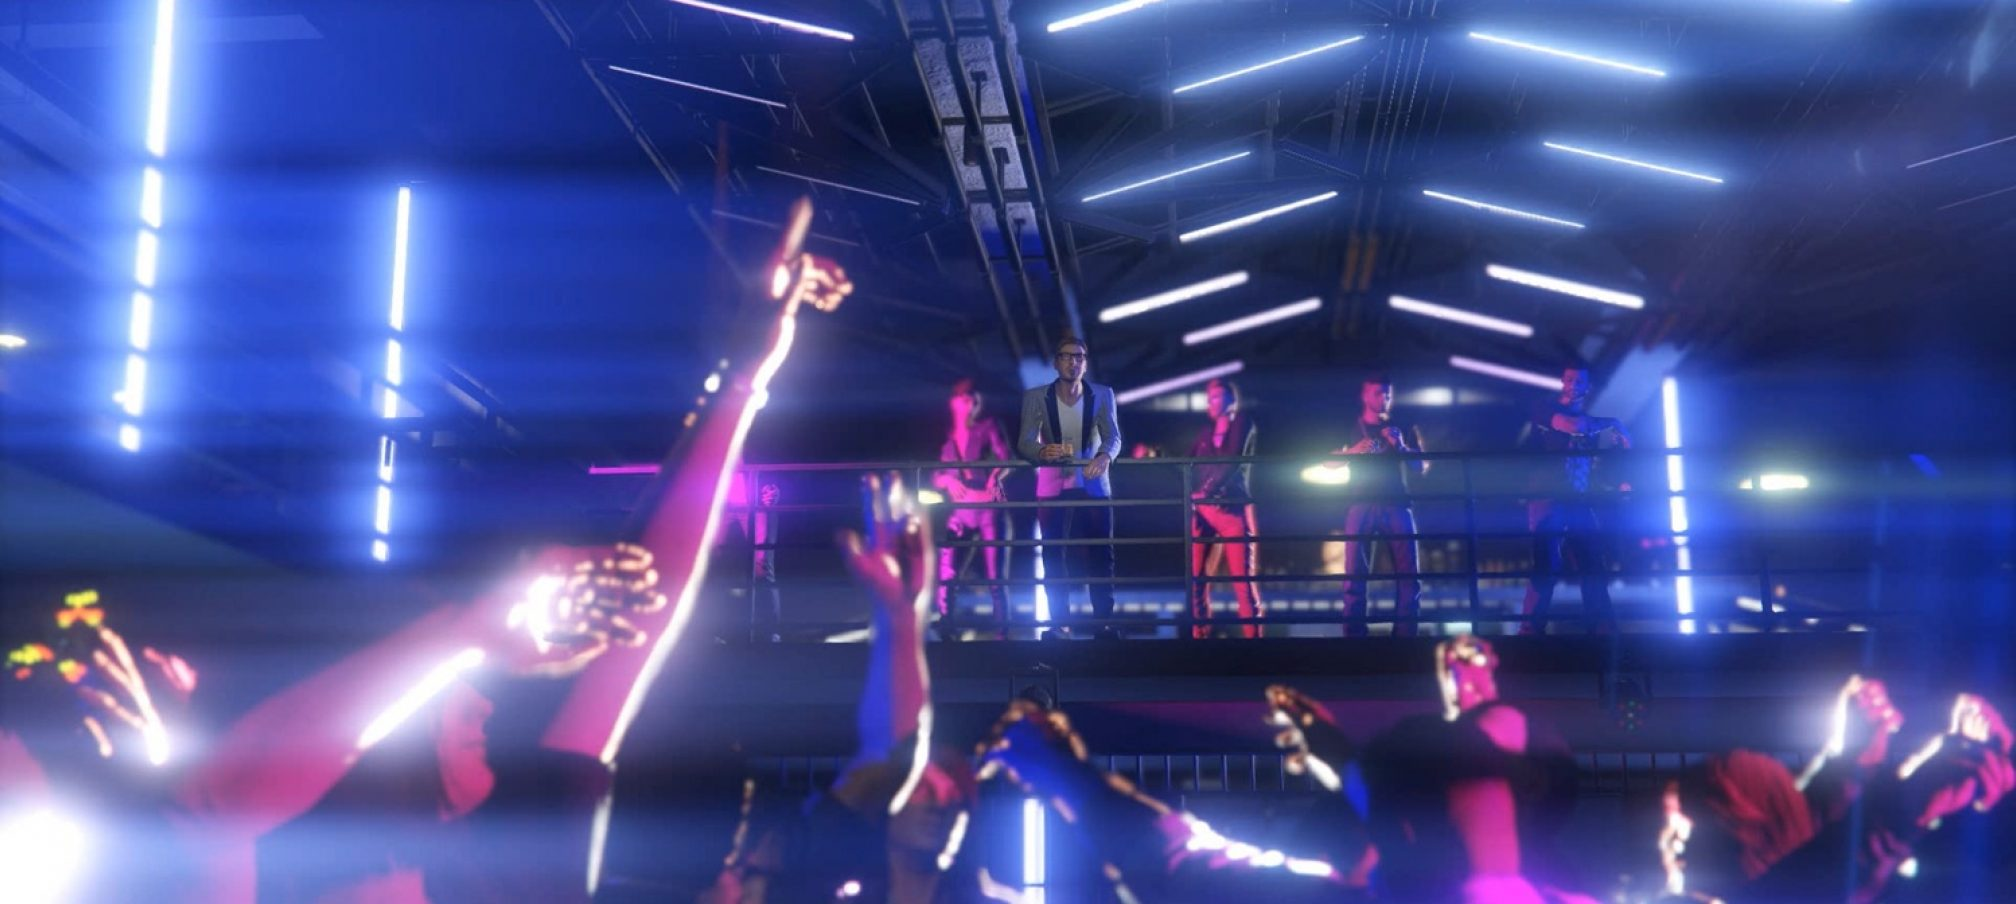 GTA After Hours is the dance music playground where you